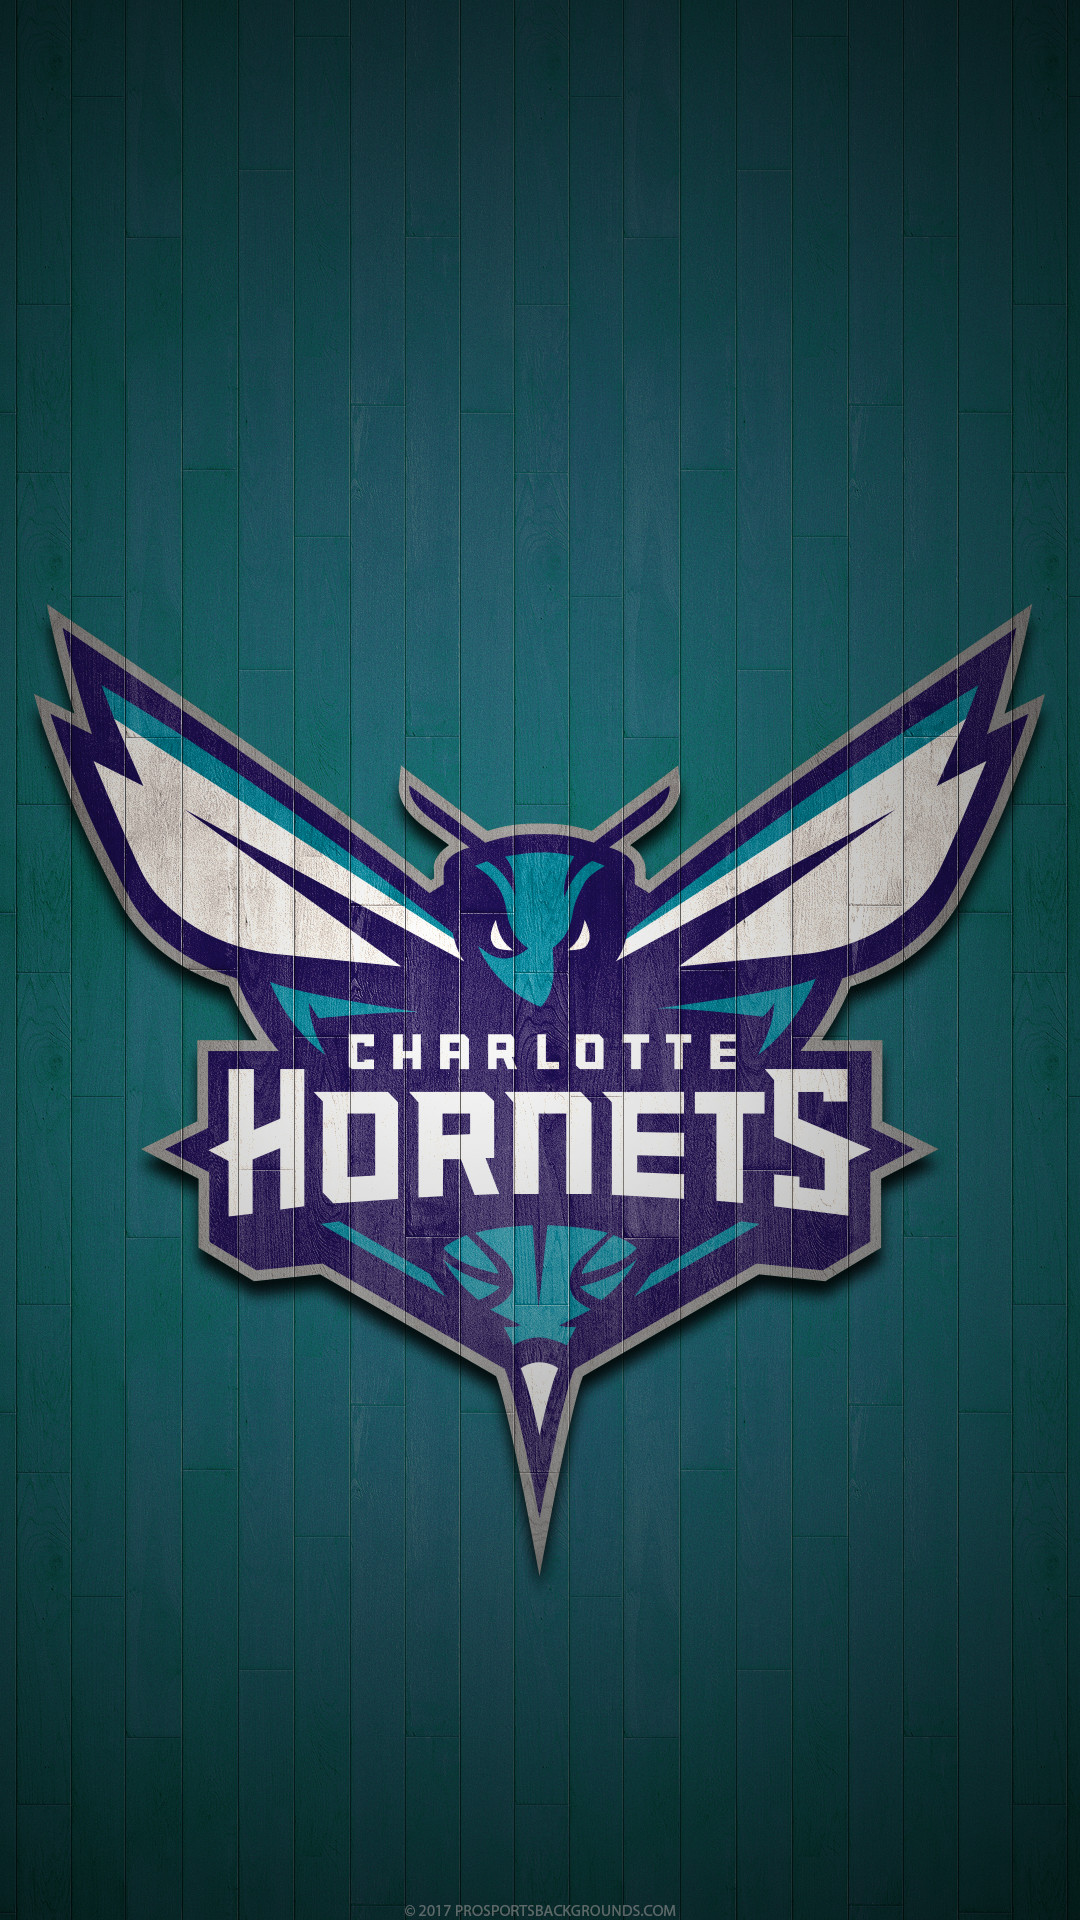 Michael Jordan Wallpaper Iphone 5 Charlotte Hornets Wallpapers 183 ① Wallpapertag